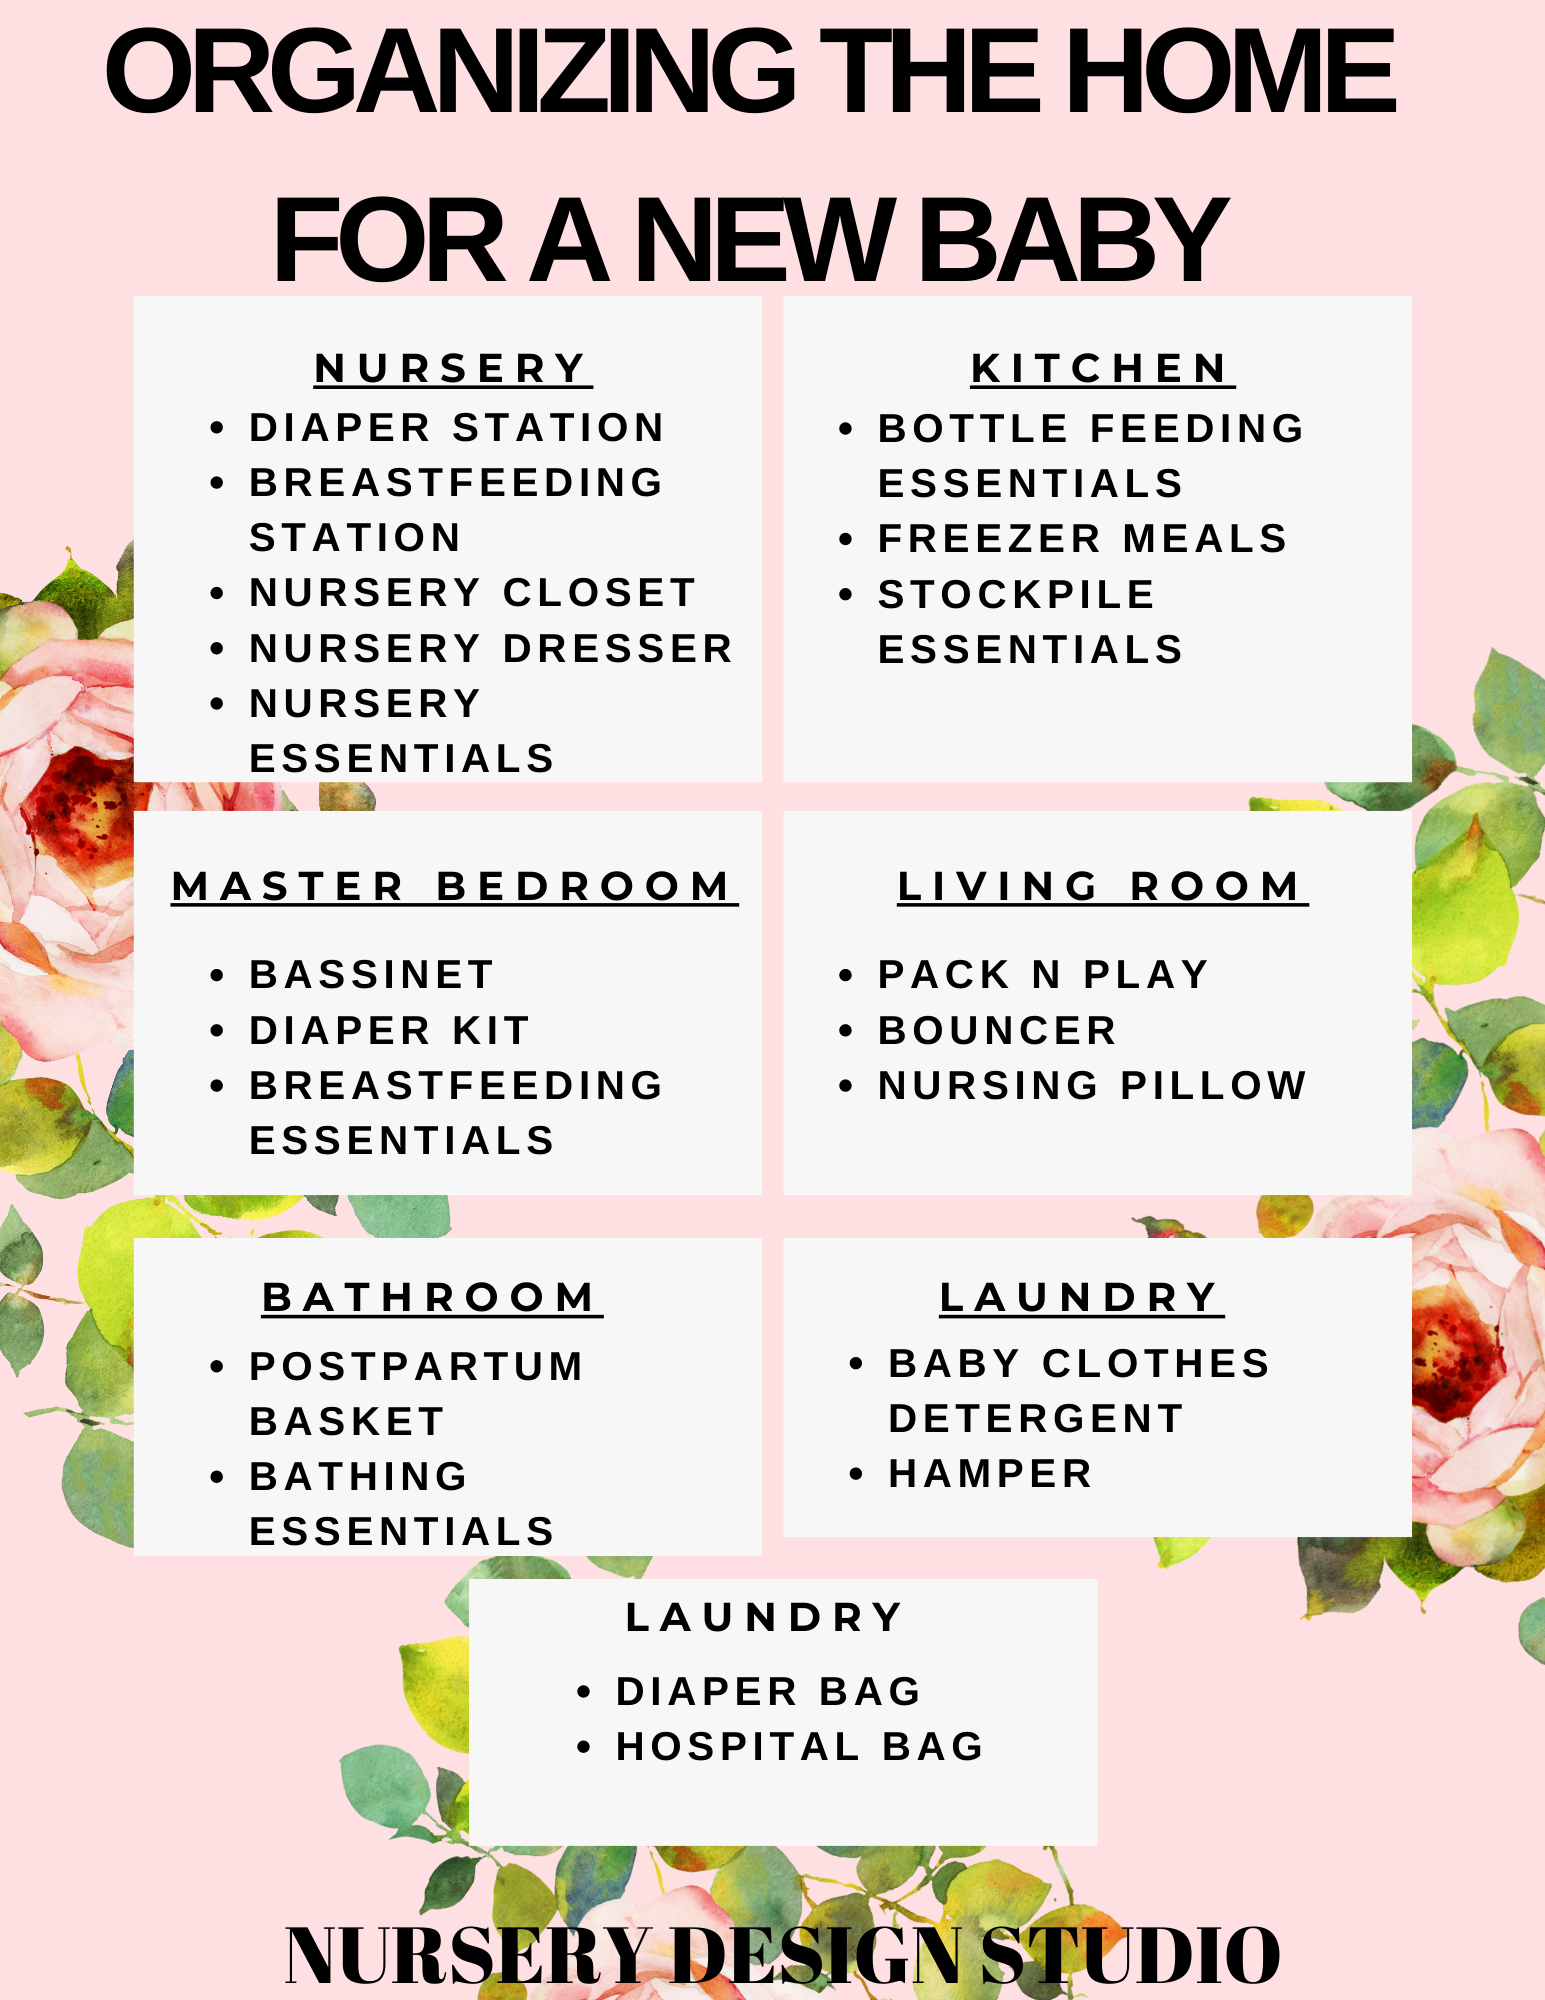 ORGANIZE YOUR HOME FOR NEW BABY